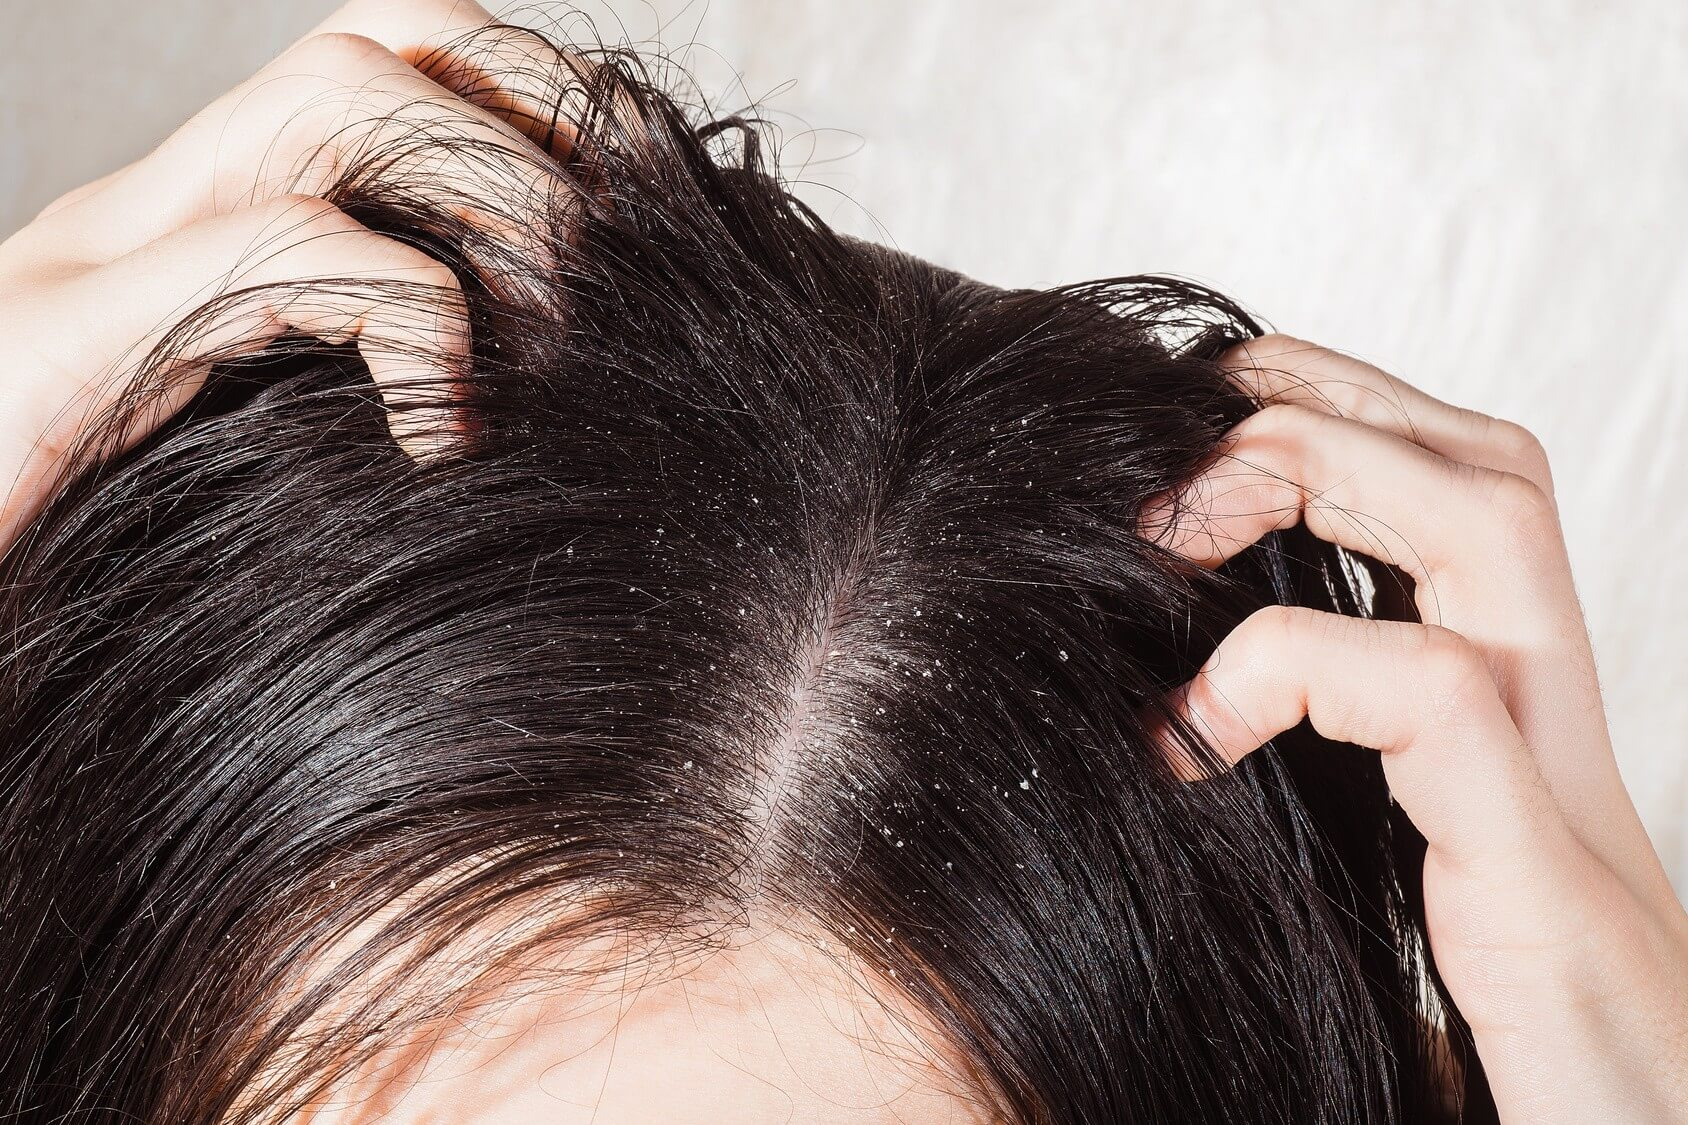 close up of a persons oily roots and dandruff.